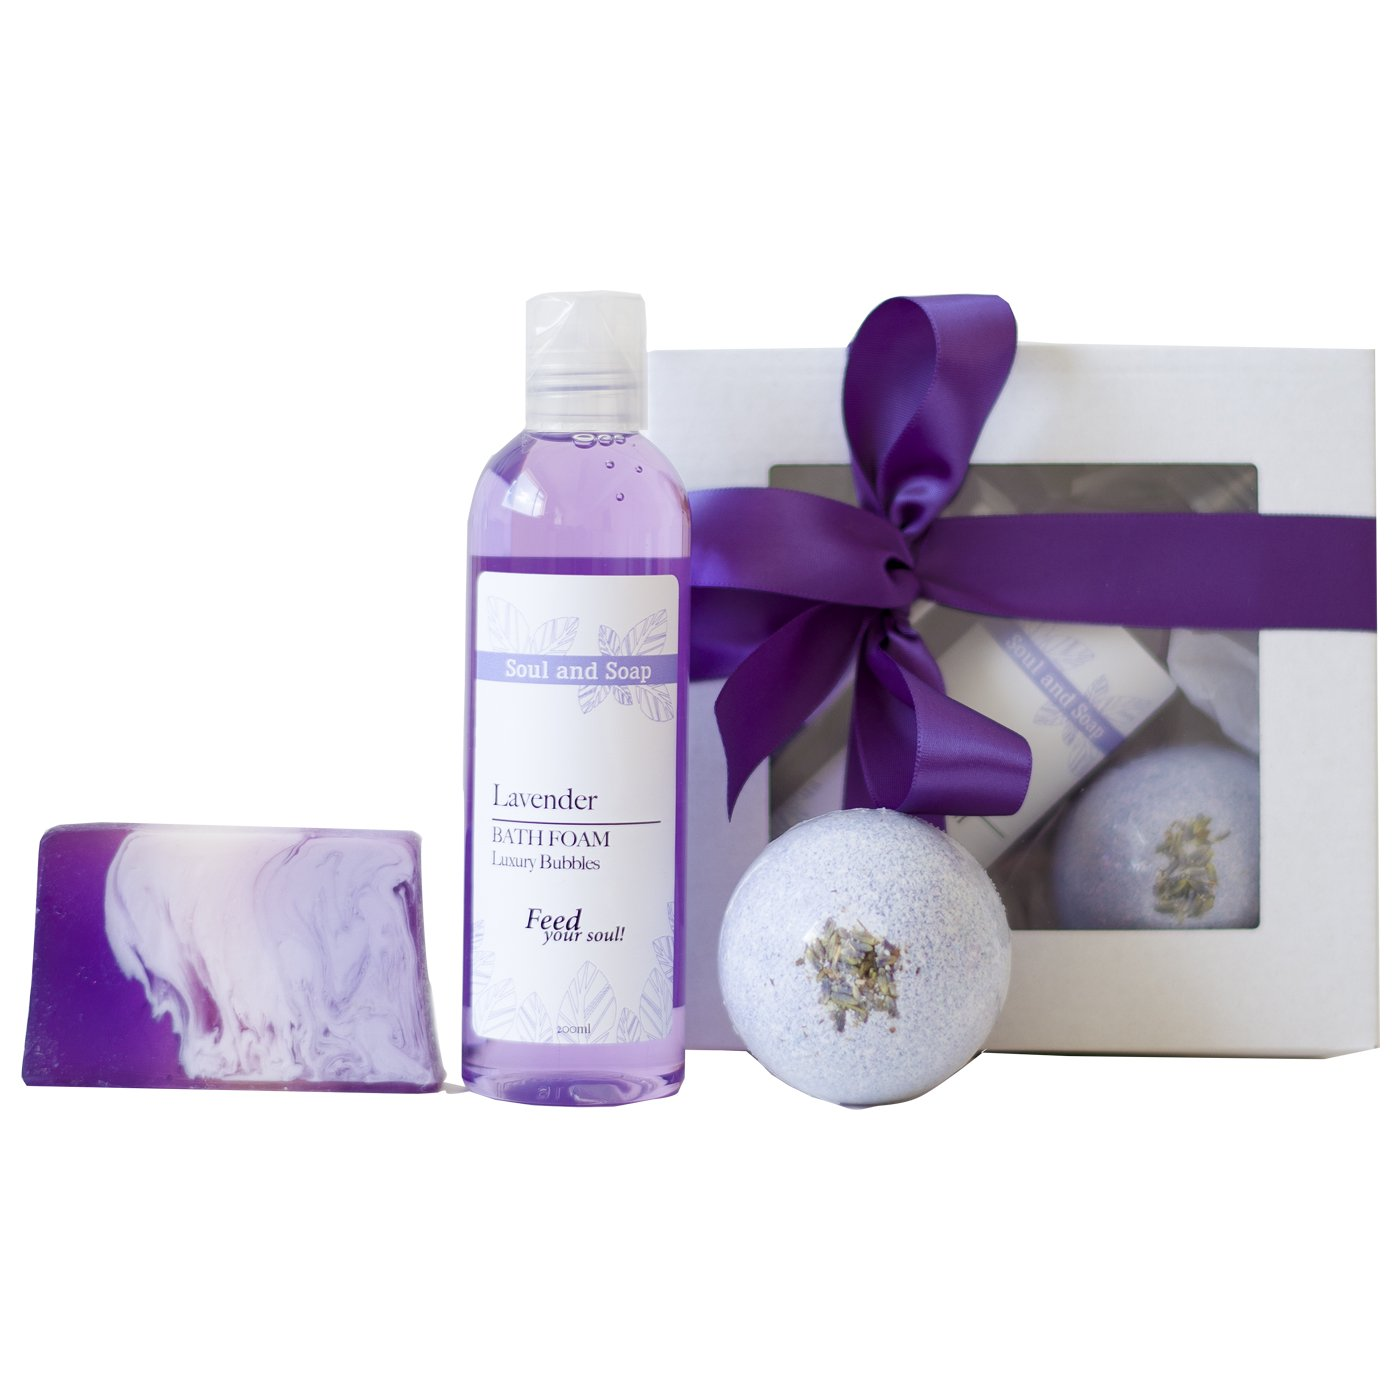 Lavender Bath Gift Set - Handmade Natural Soap Bath Bomb Foam Spa Kit Gift For Her For Woman Mother Pamper Hamper Soak Vegan Cruelty Free Birthday Christmas Pampering Beauty Aromatherapy Idea Soul and Soap